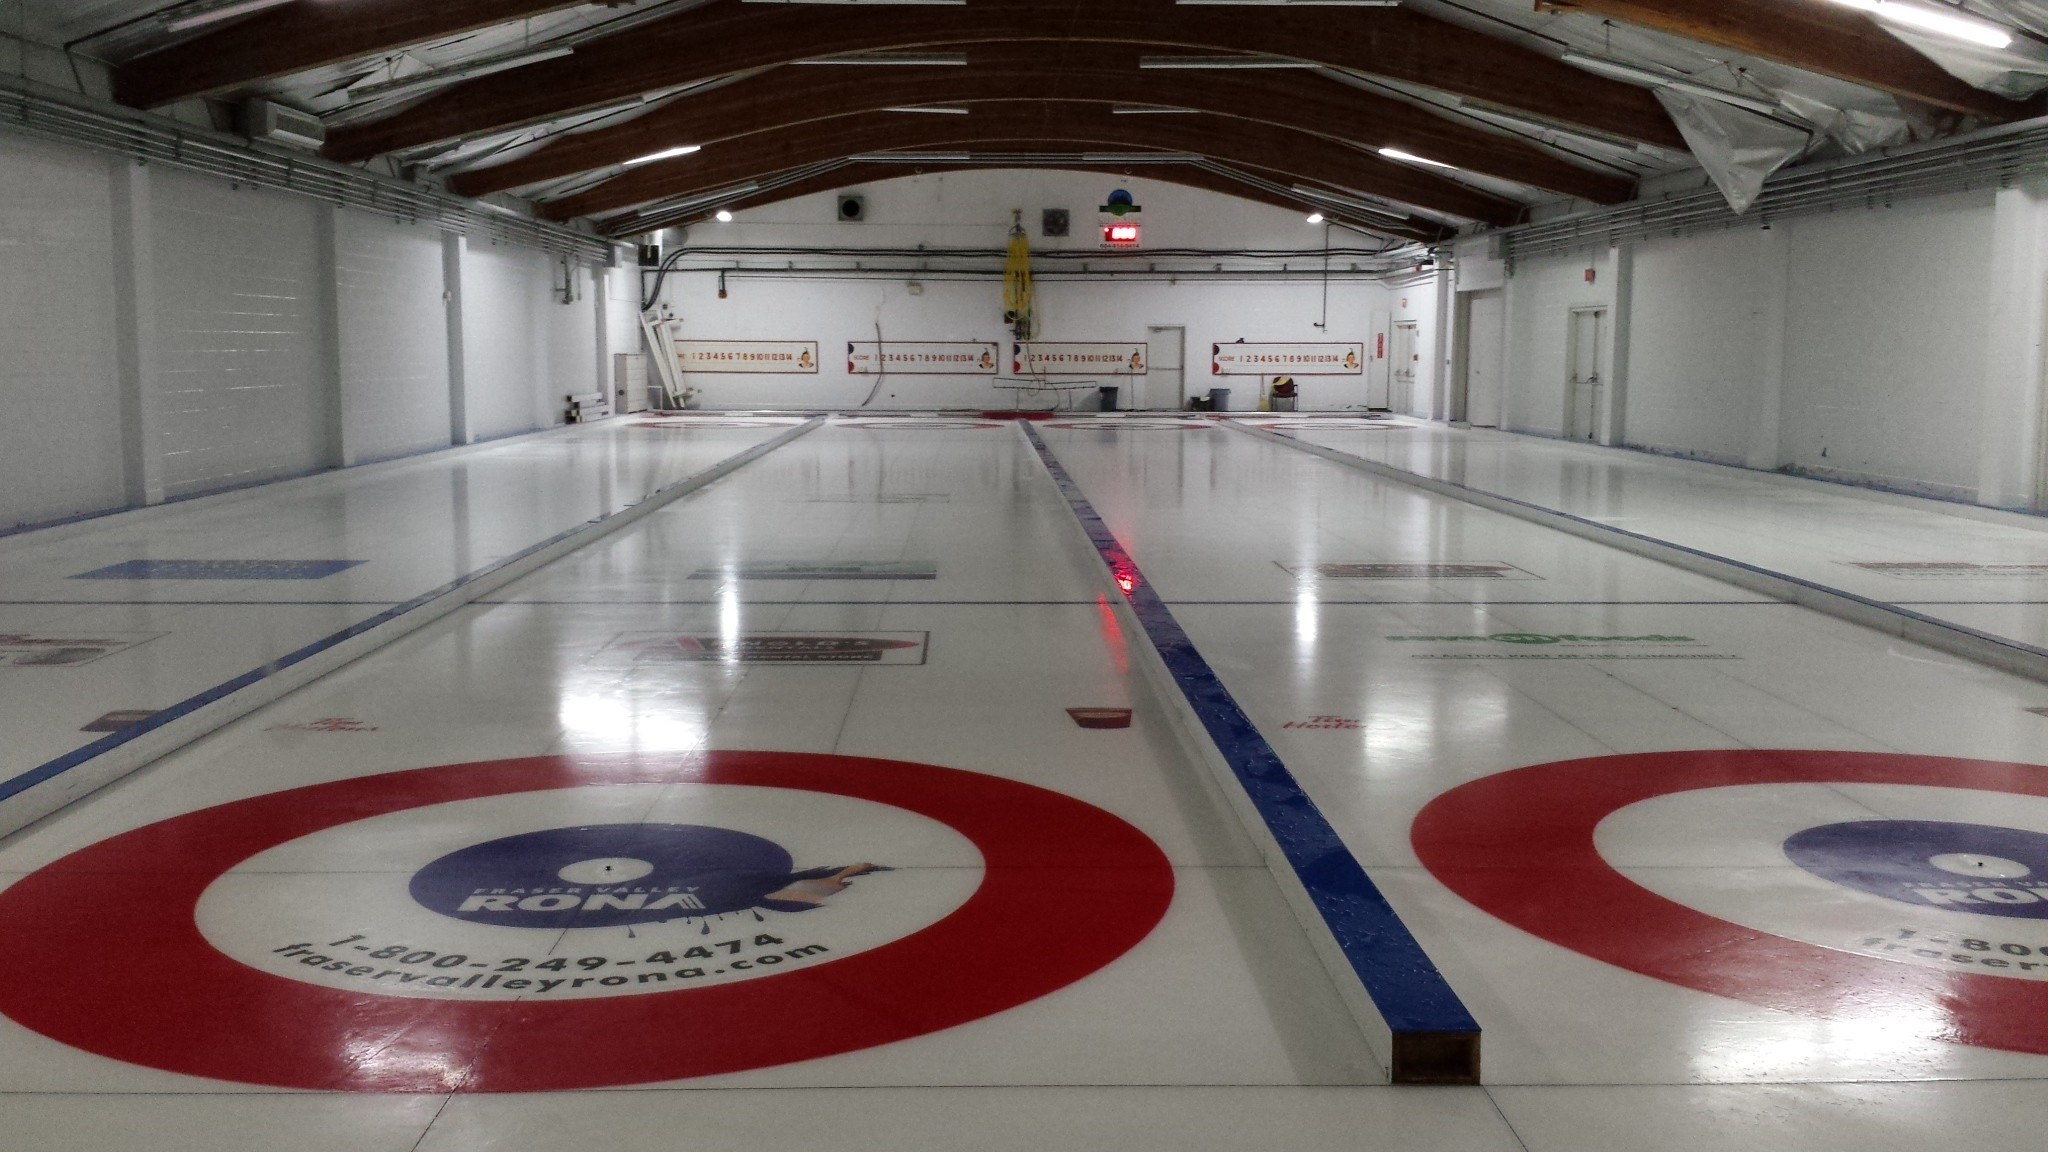 Fees for 2016-2017 Curling Season